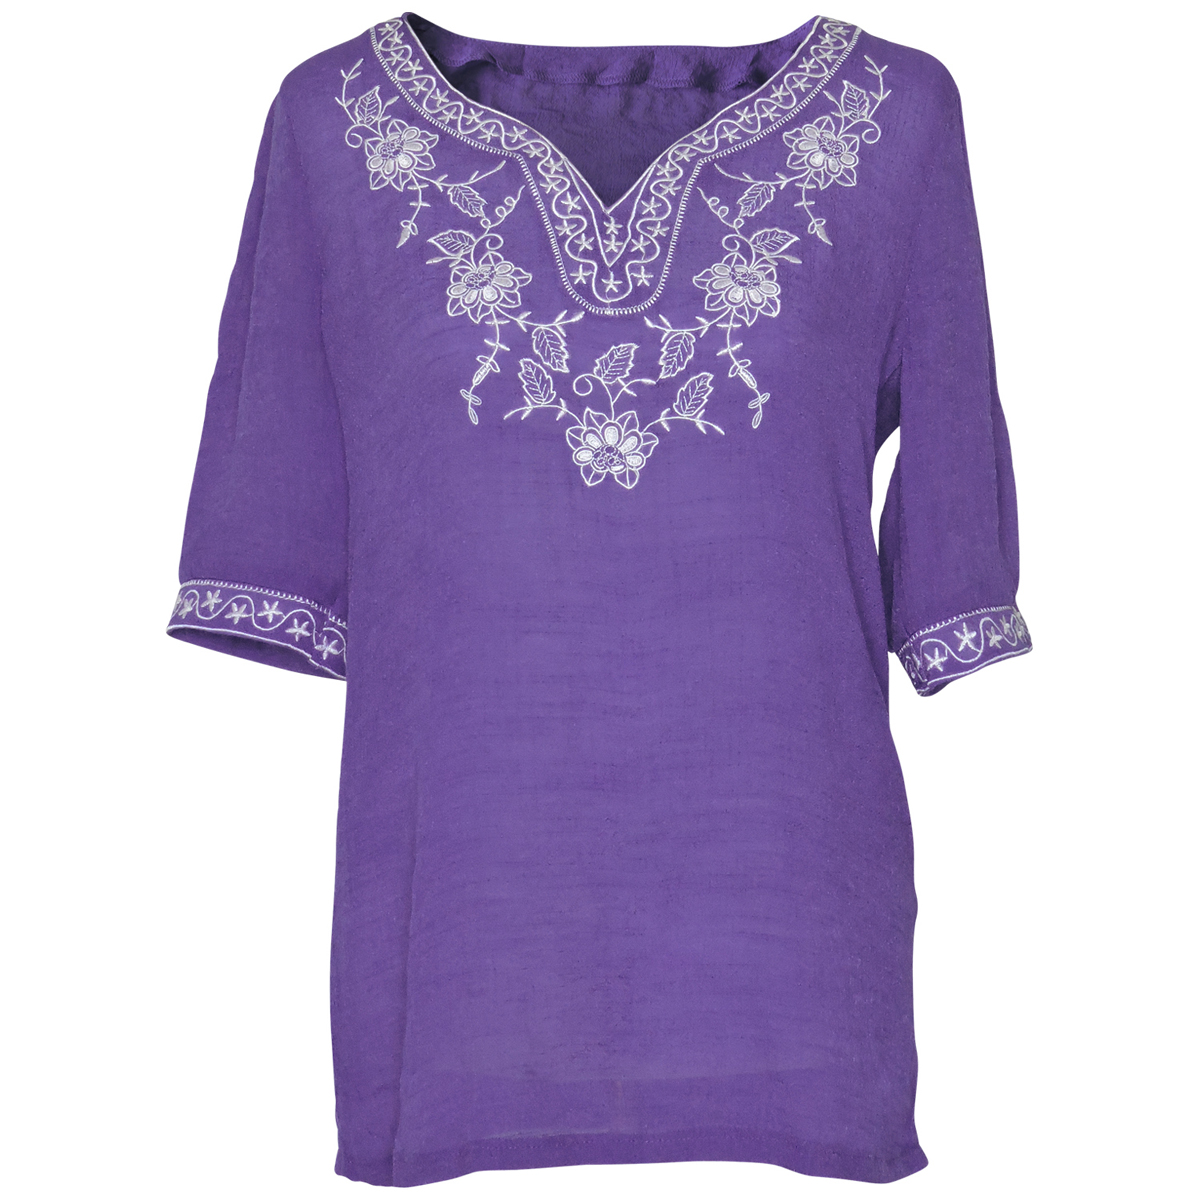 Faship Womens Short Sleeve Embroidered Embroidery Tunic Top Blouse